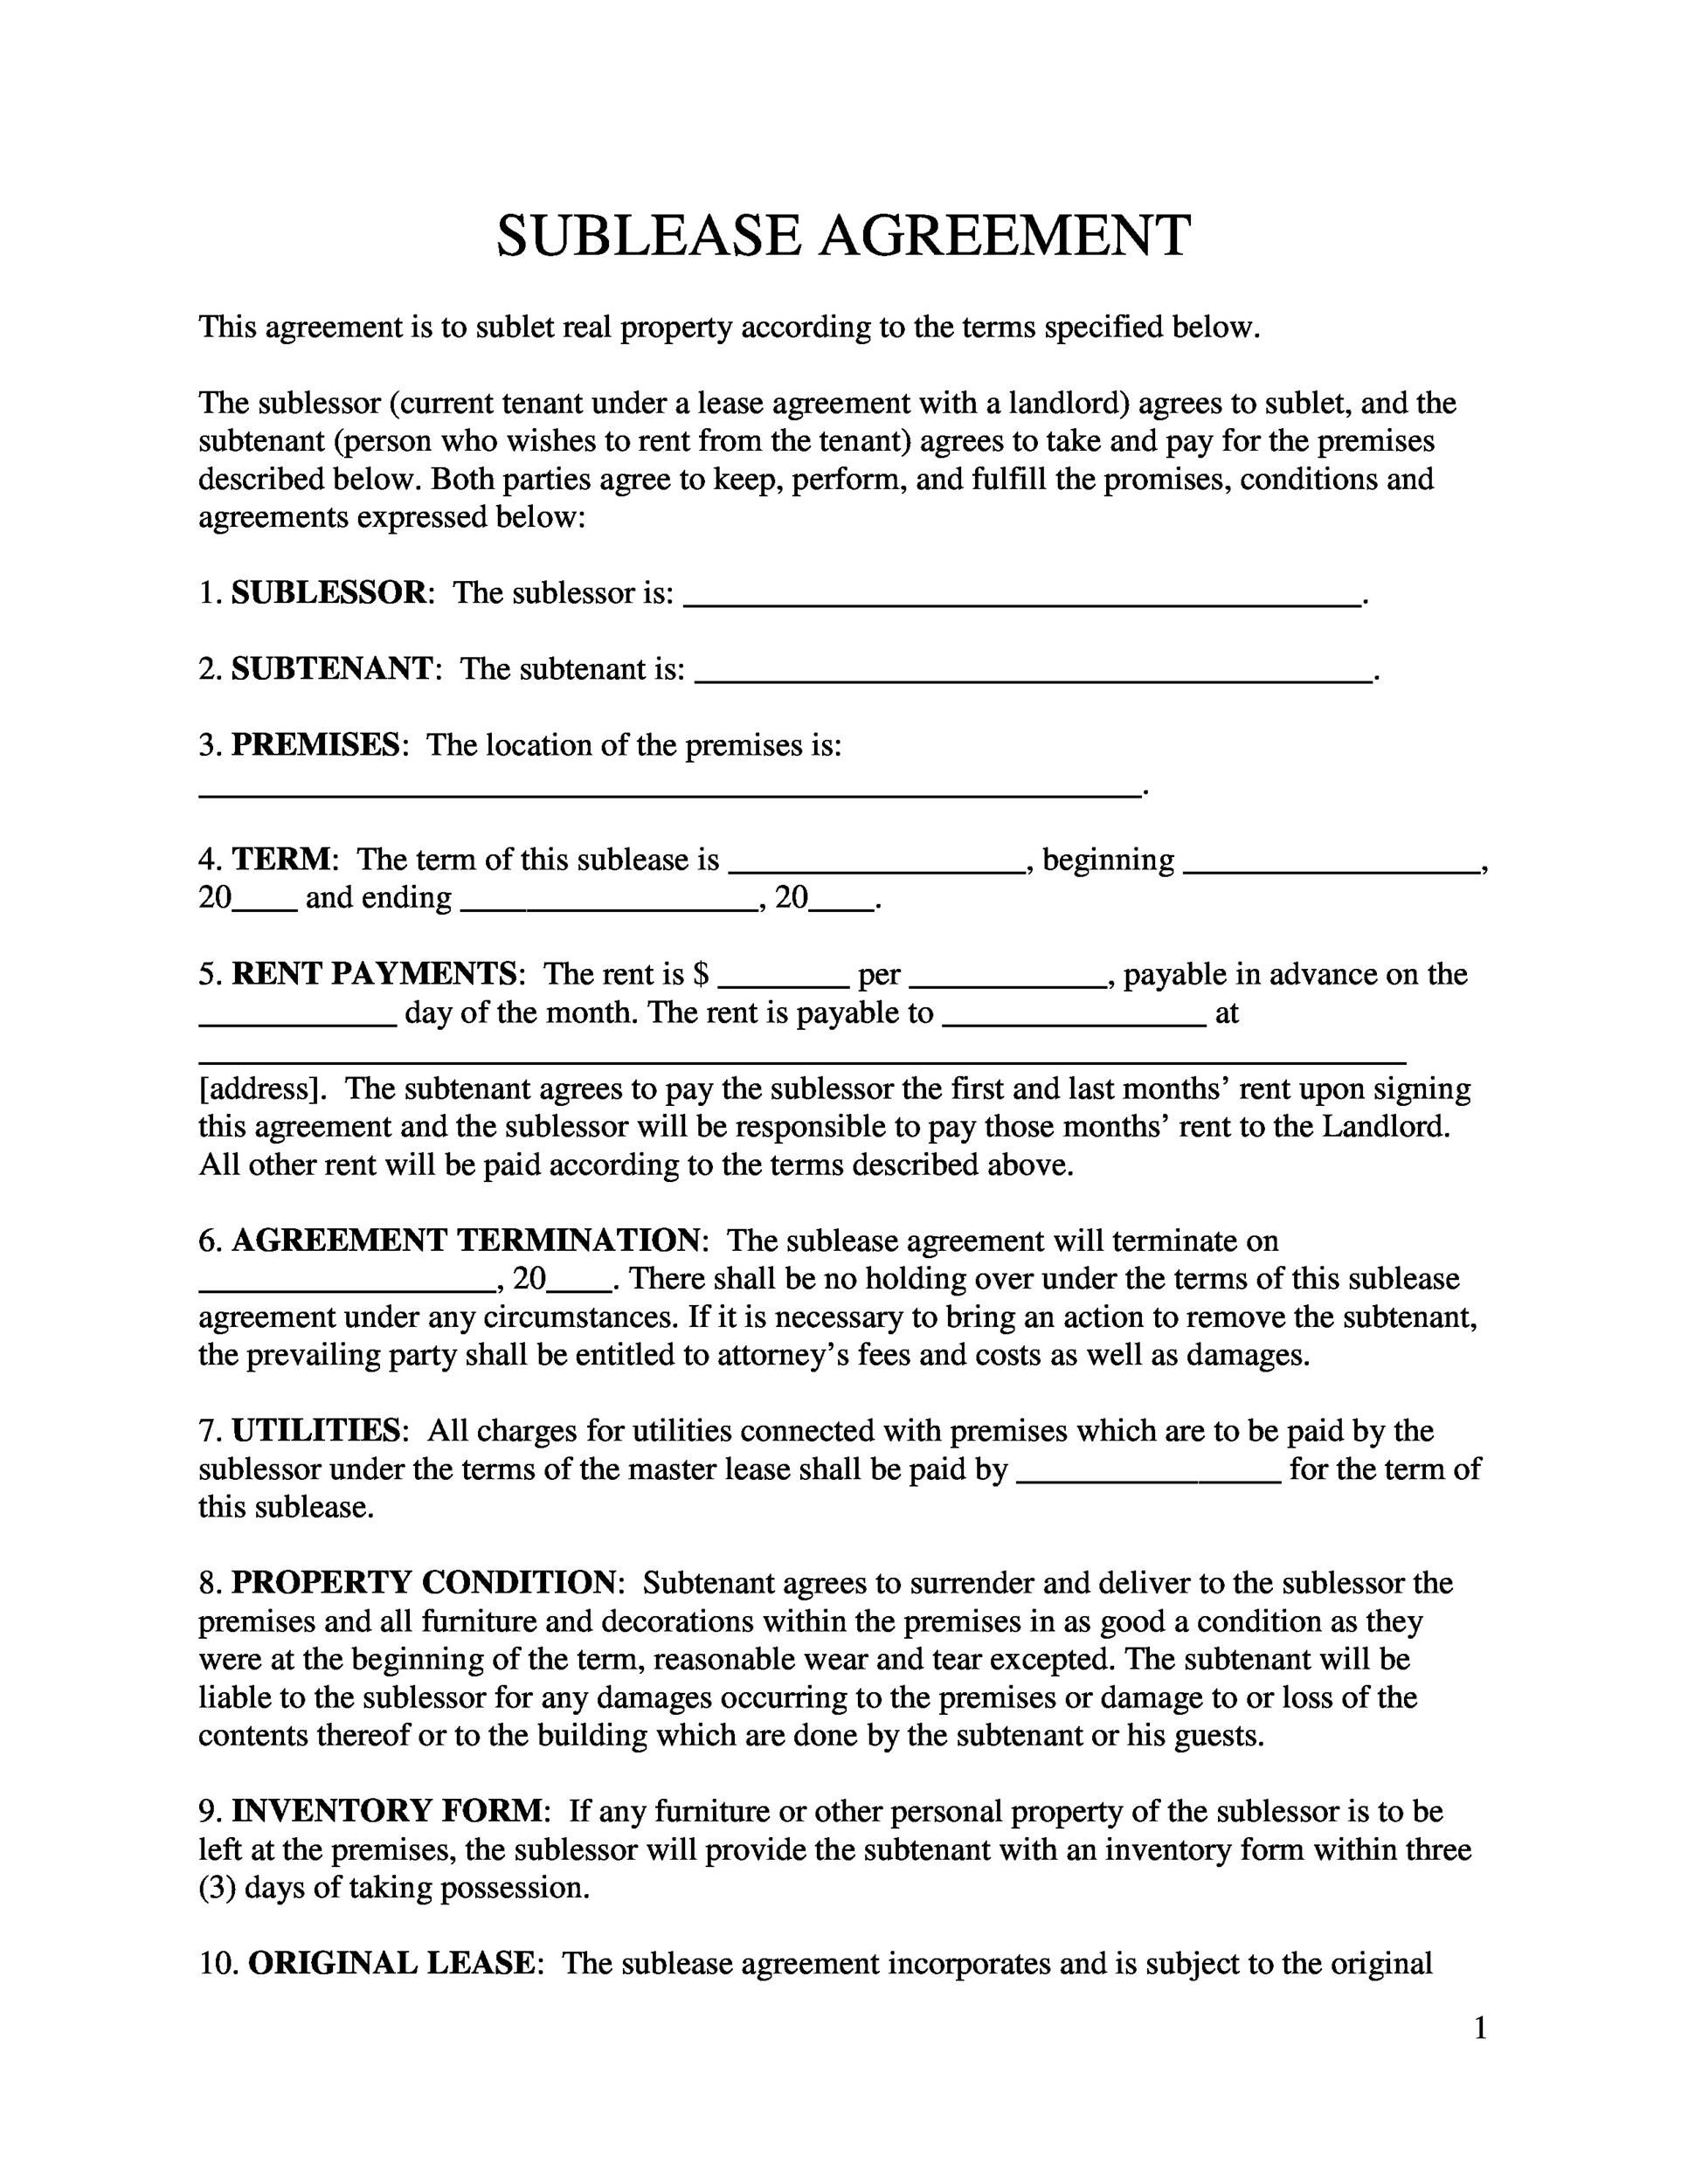 009 Fascinating Free Sublease Agreement Template South Africa High Resolution  Simple Residential Lease Word DownloadFull